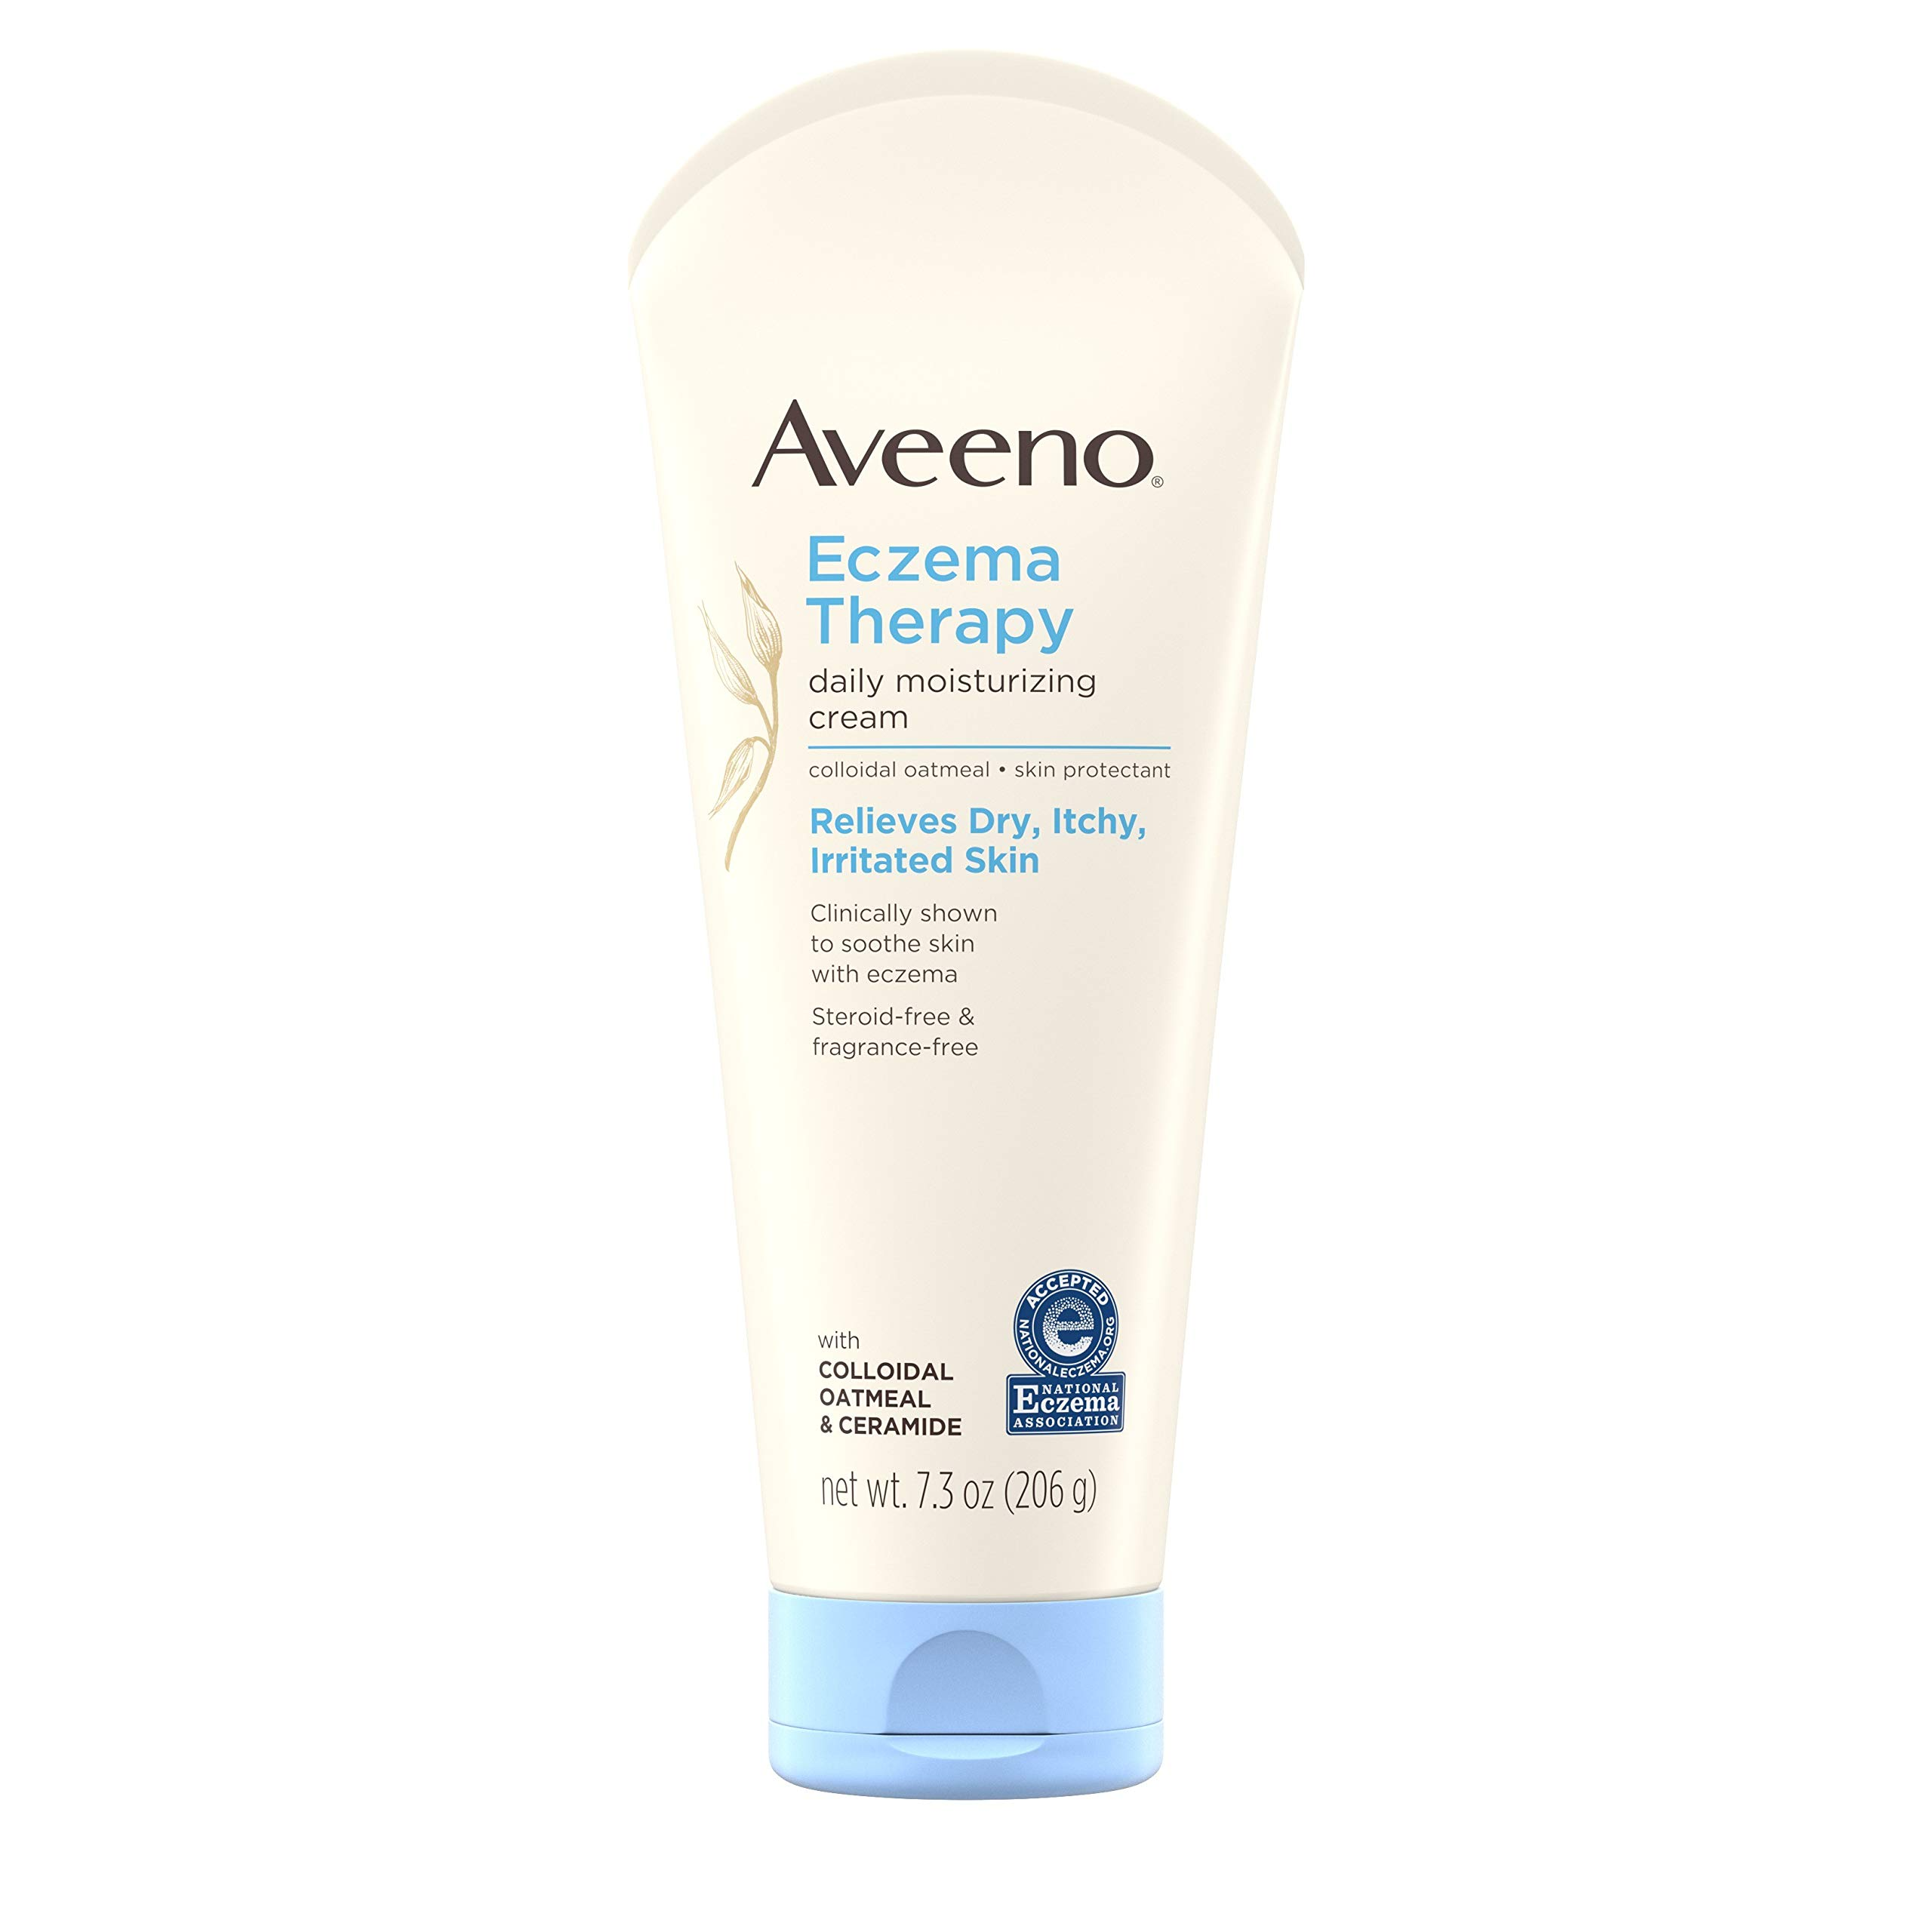 Aveeno Eczema Therapy Daily Moisturizing Cream for Sensitive Skin, Soothing Lotion with Colloidal Oatmeal for Dry, Itchy, and Irritated Skin, Steroid-Free and Fragrance-Free, 7.3 oz